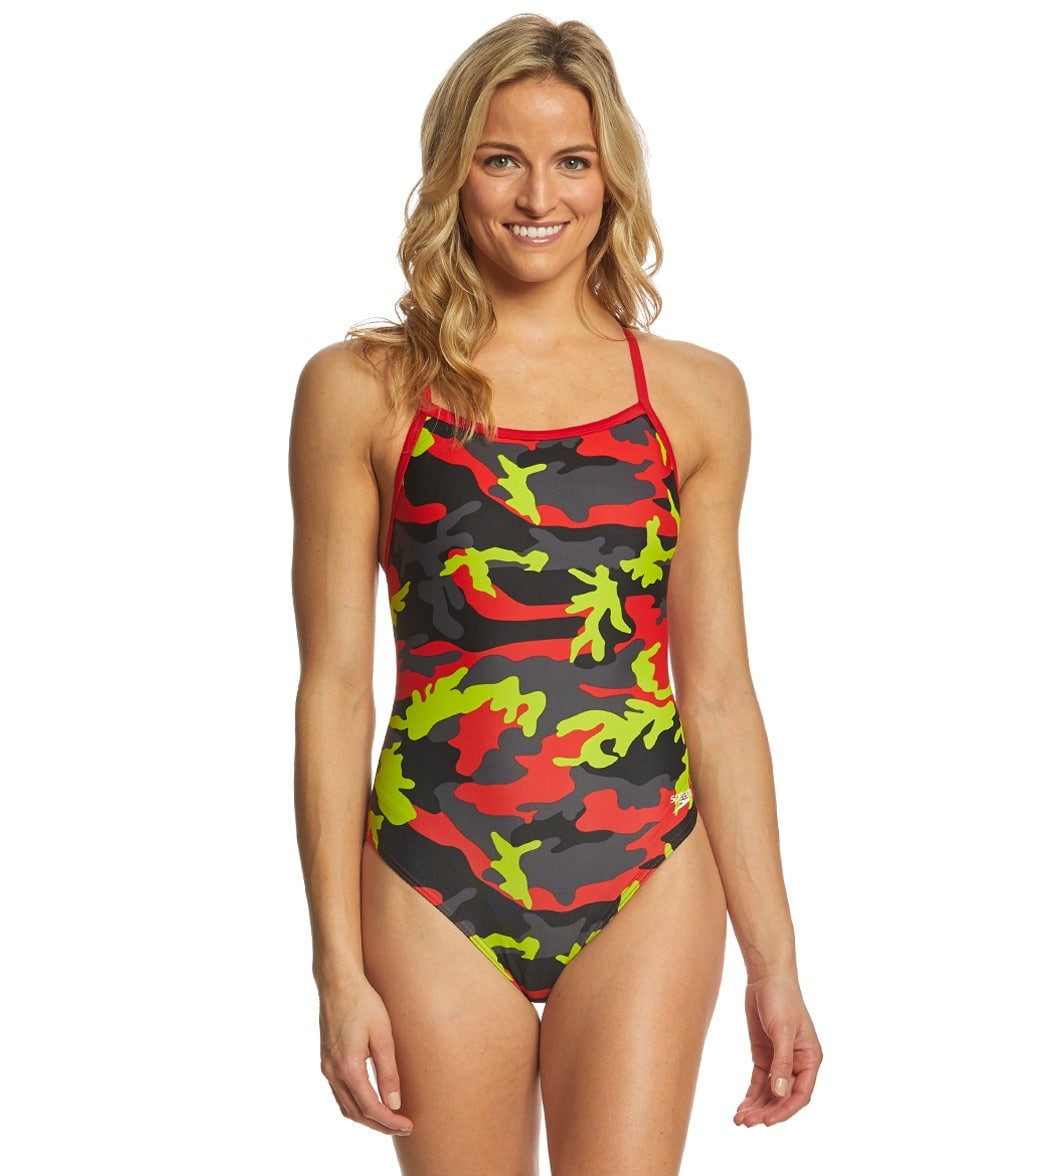 abd1e4297405d Speedo Women s Camo Squad Flyback One Piece Swimsuit at SwimOutlet.com -  Free Shipping